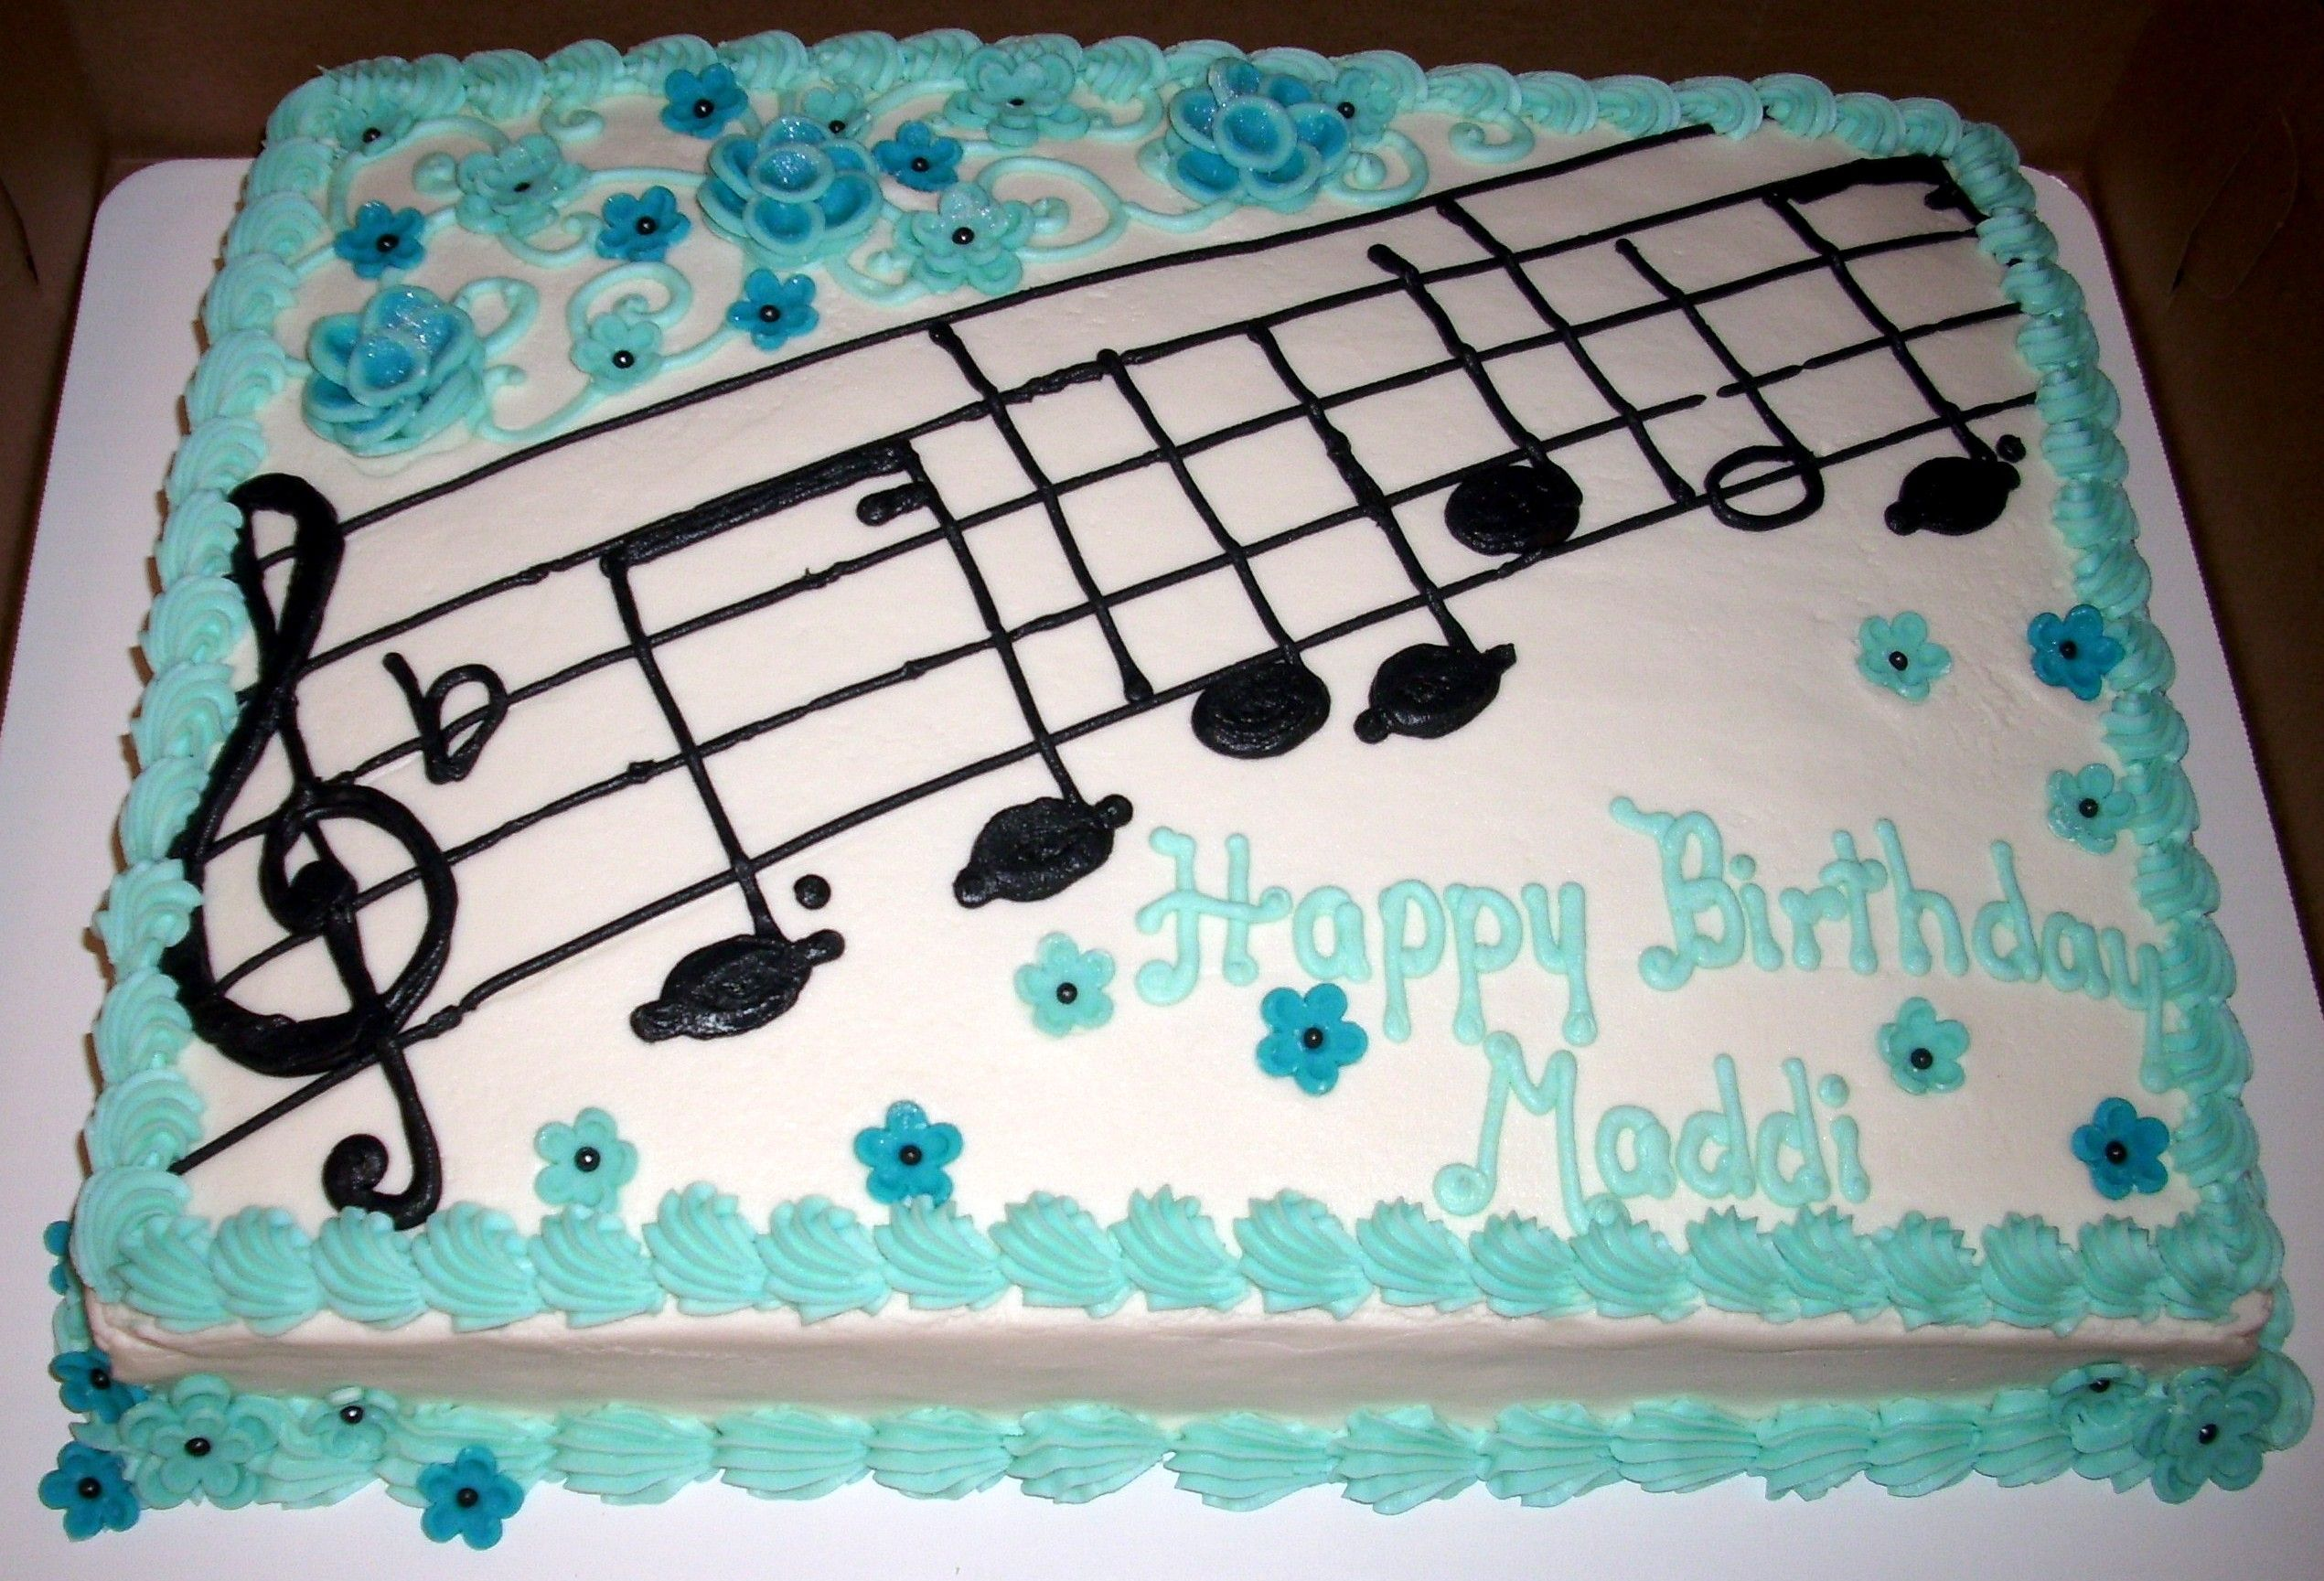 Musical Sheet Cake Buttercream Icing With Fondant Flowers With